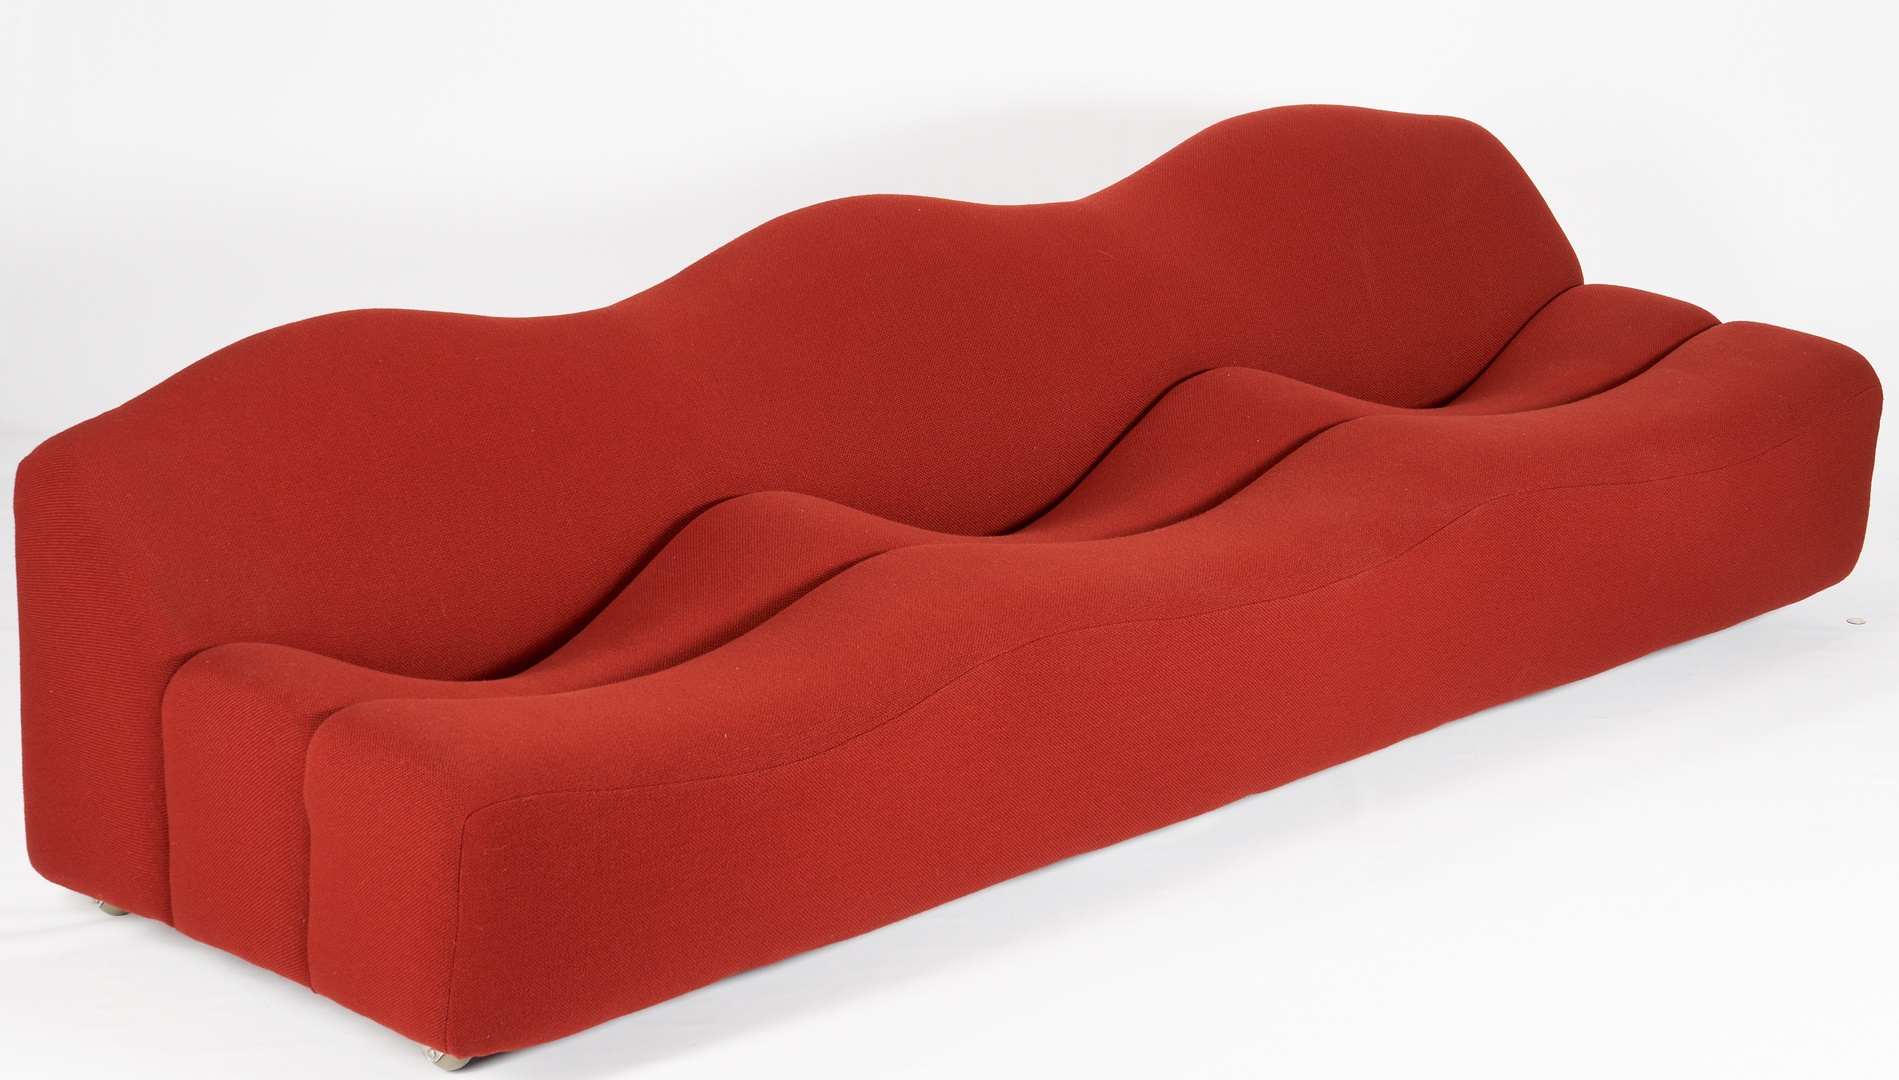 Lot 612: Pierre Paulin for Artifort ABCD Sofa 1 of 3